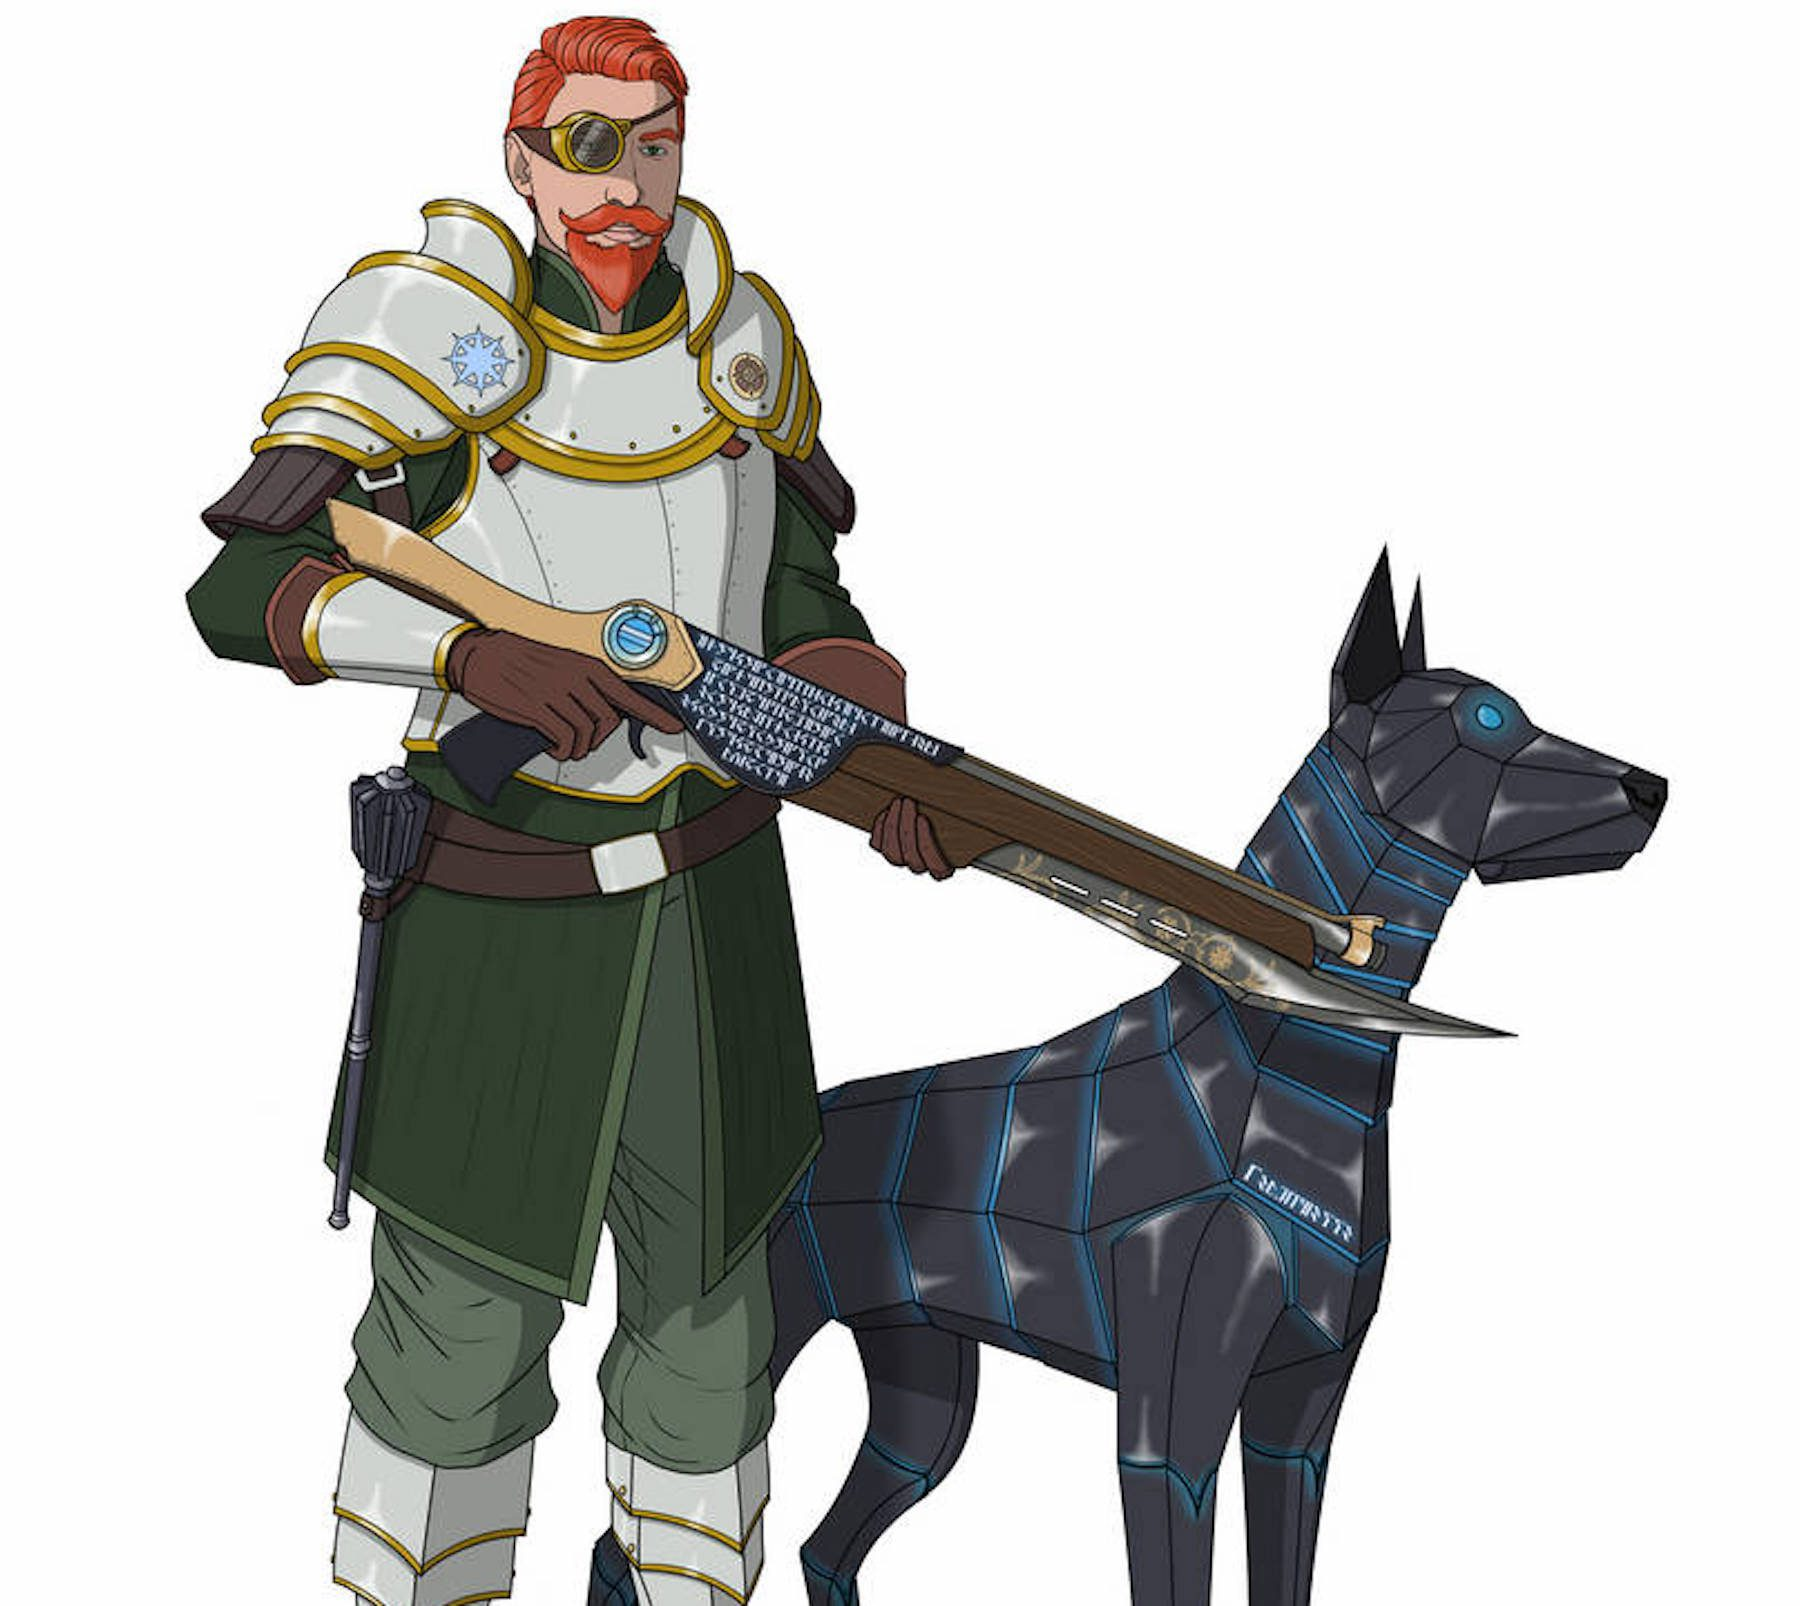 A battle smith subclass of artificer from Dungeons and Dragons standing next to his automaton dog and wearing a suit of armor.